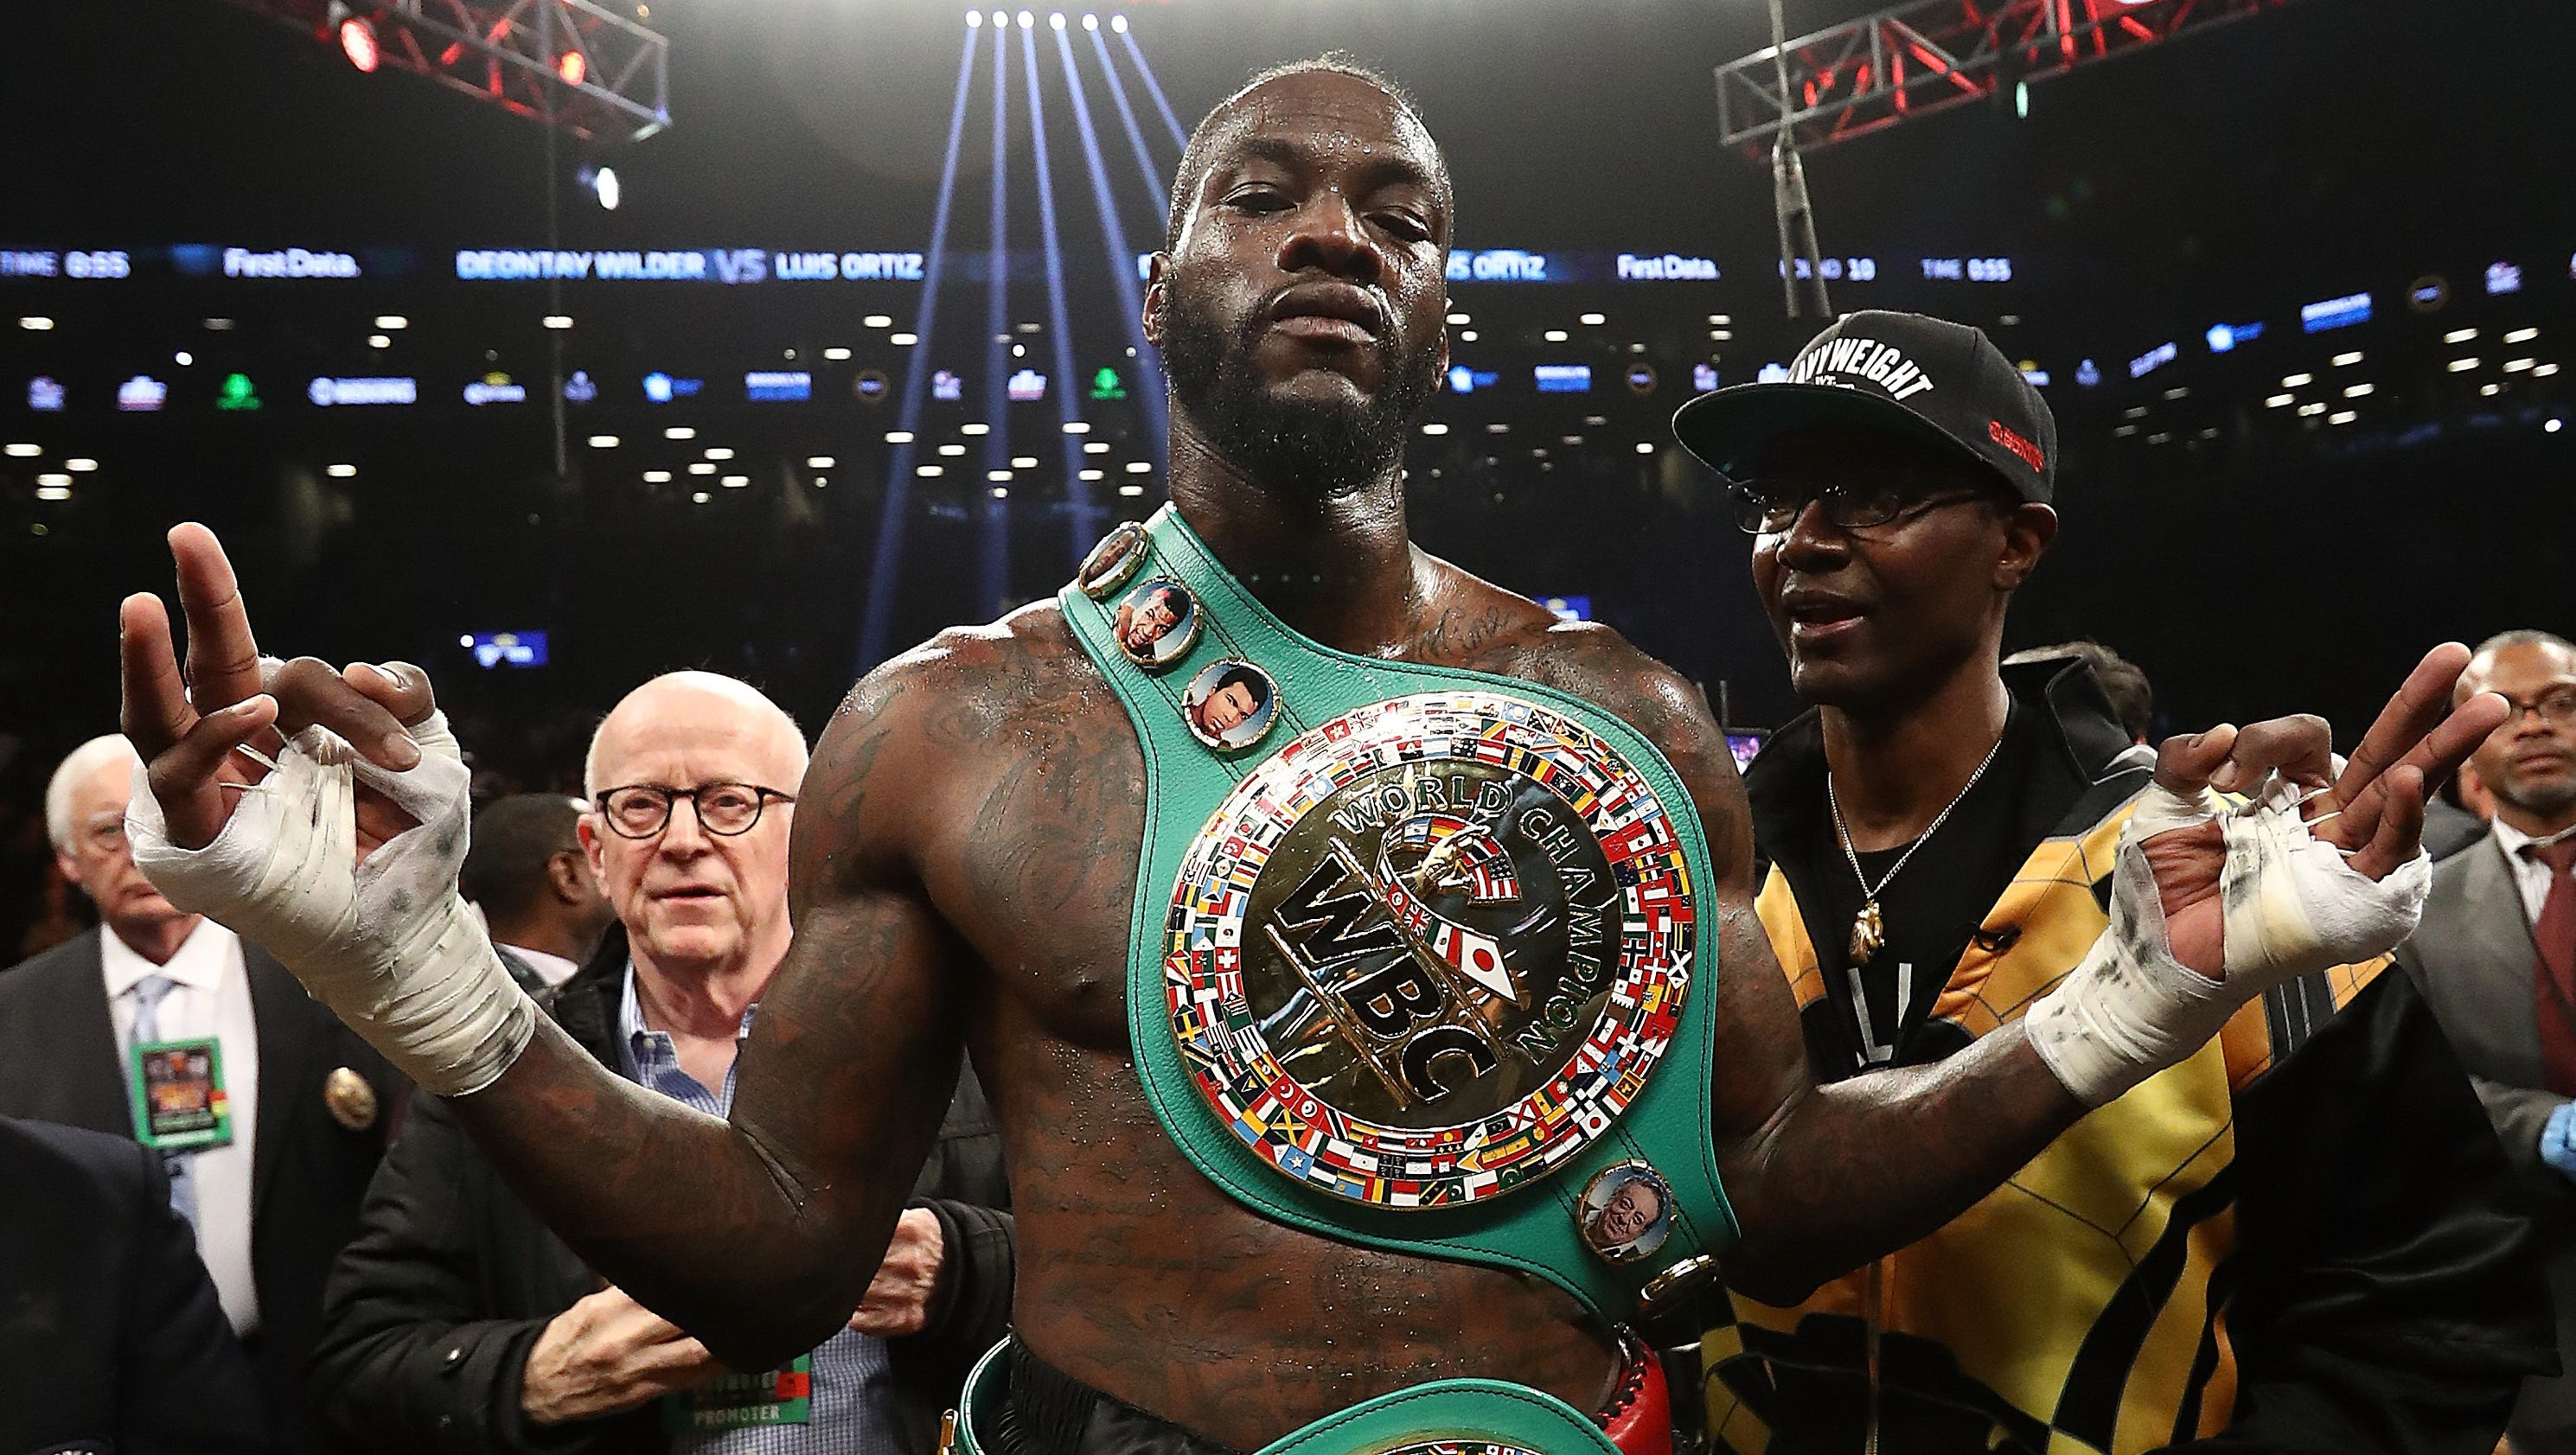 Deontay Wilder: Deontay Wilder Escapes KO, Then KOs Luis Ortiz In The 10th